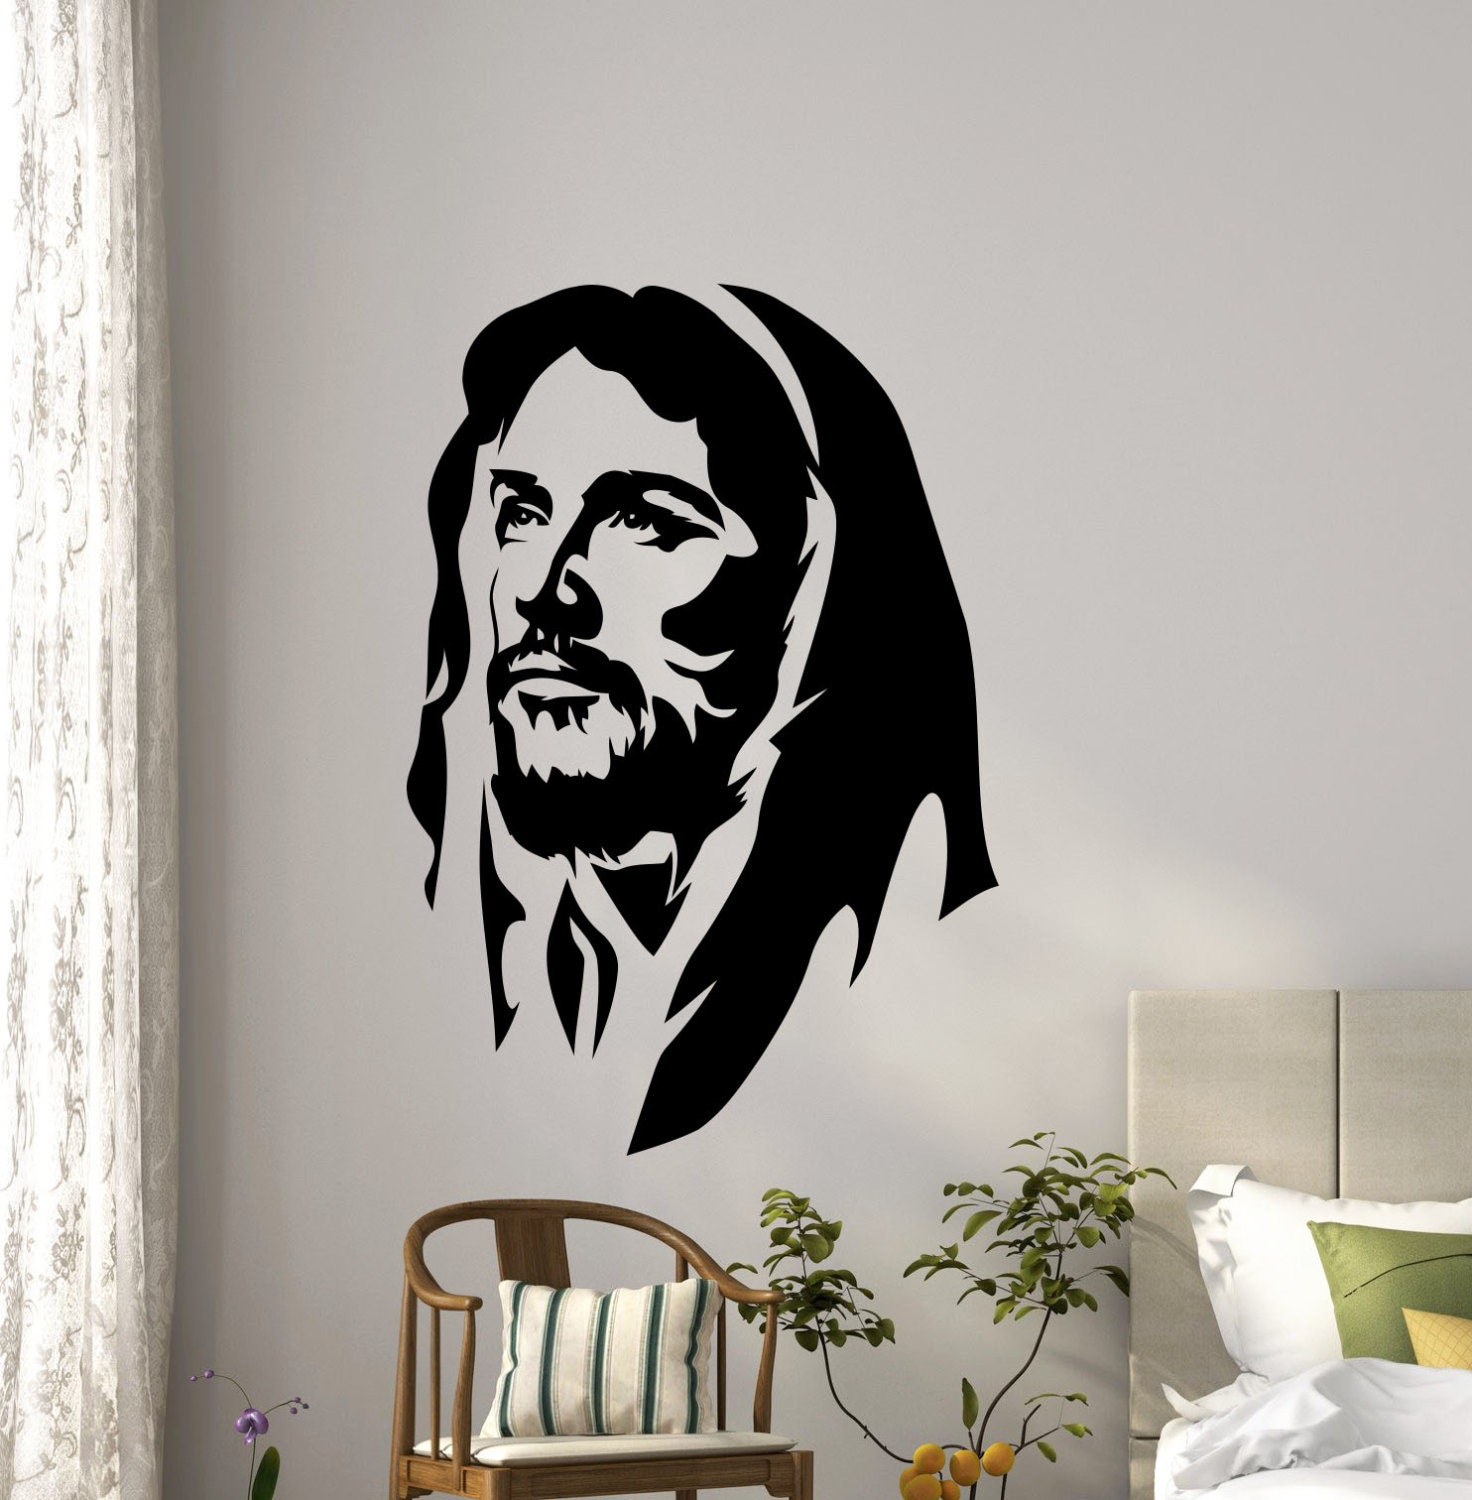 Jesus Christ Wall Vinyl Decal Religious Prayer Christian